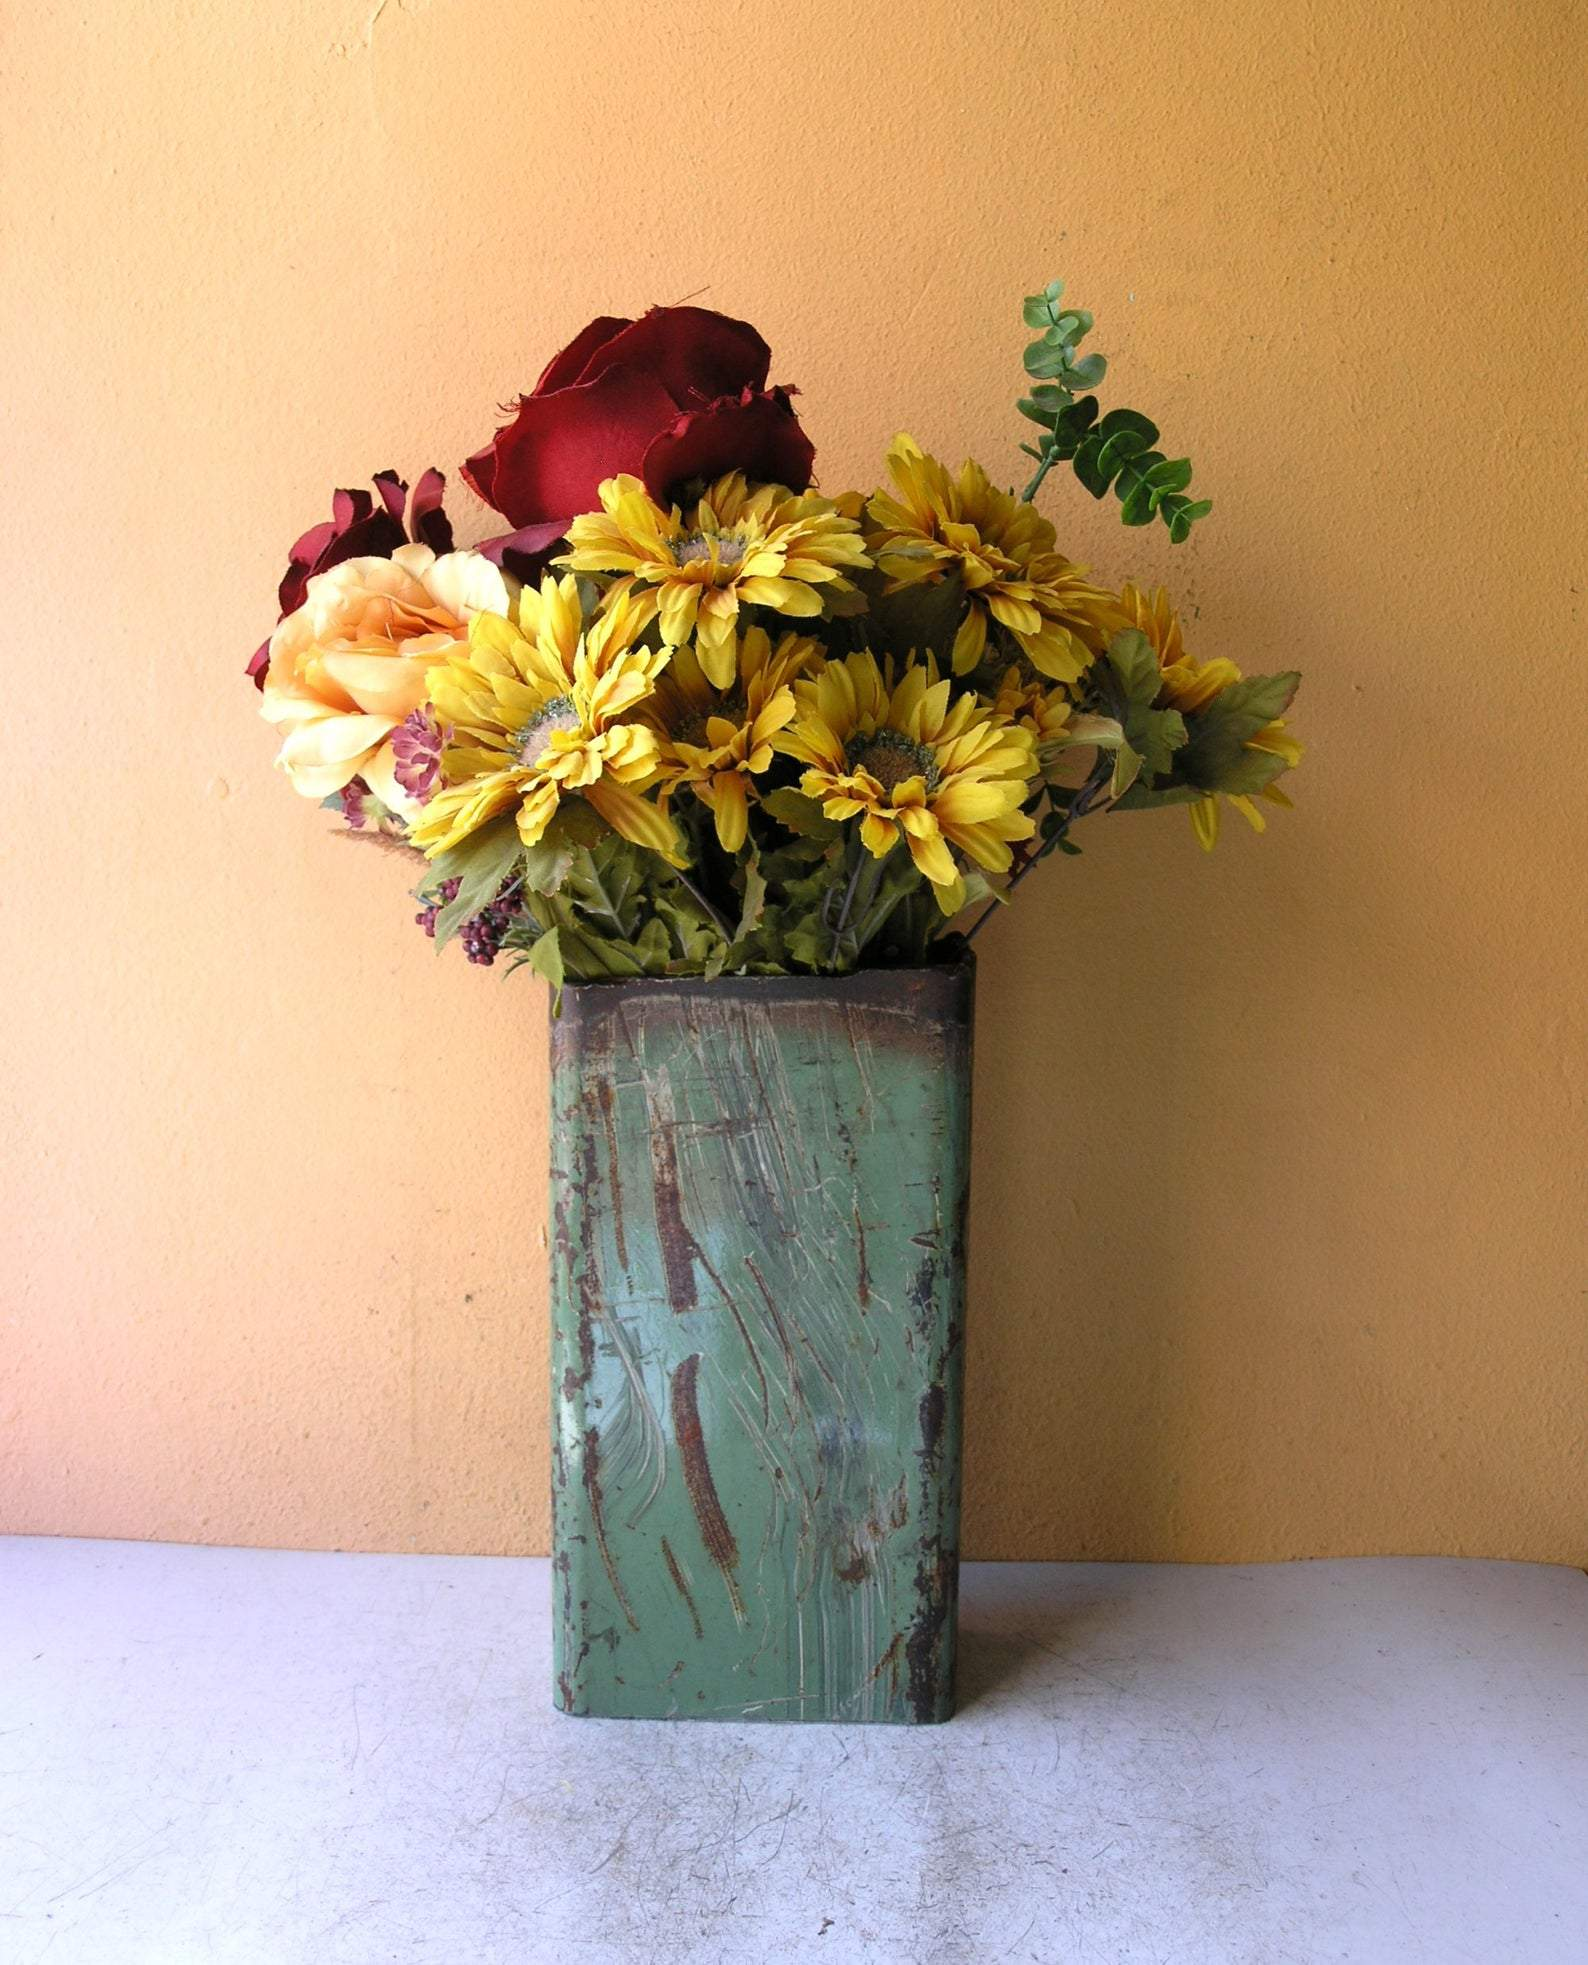 Industrial green flower vase for home or office table centerpiece